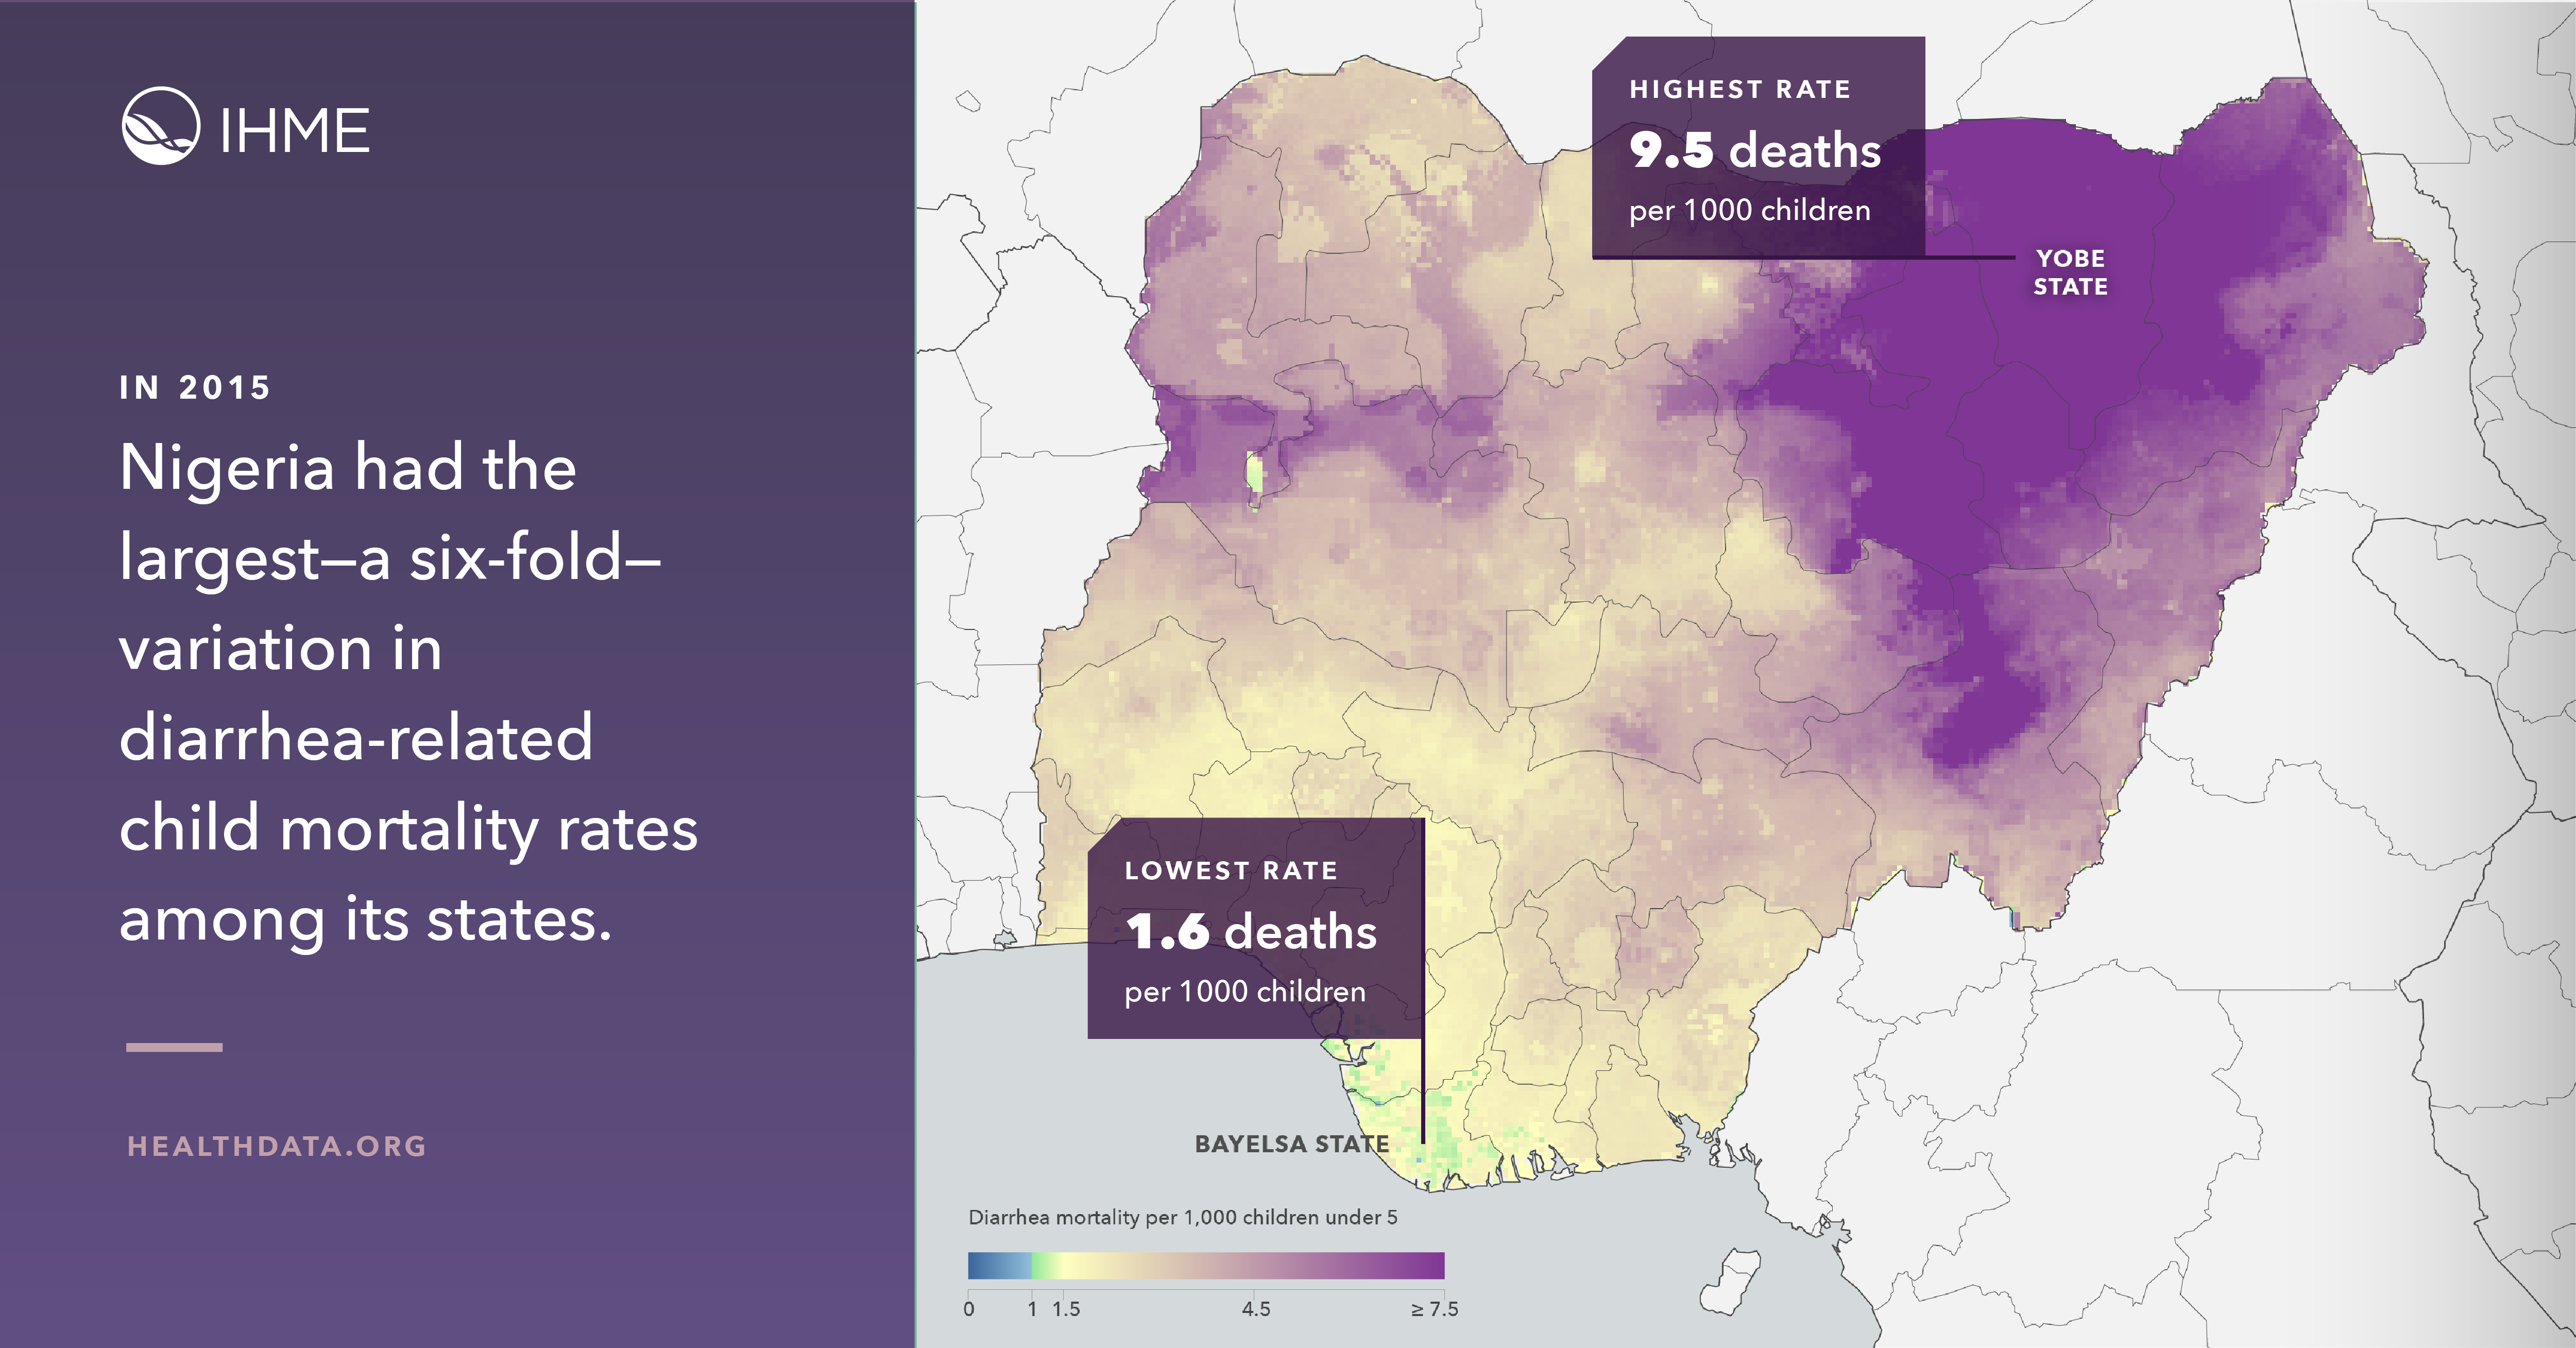 Heat map of diarrheal disease in Nigeria